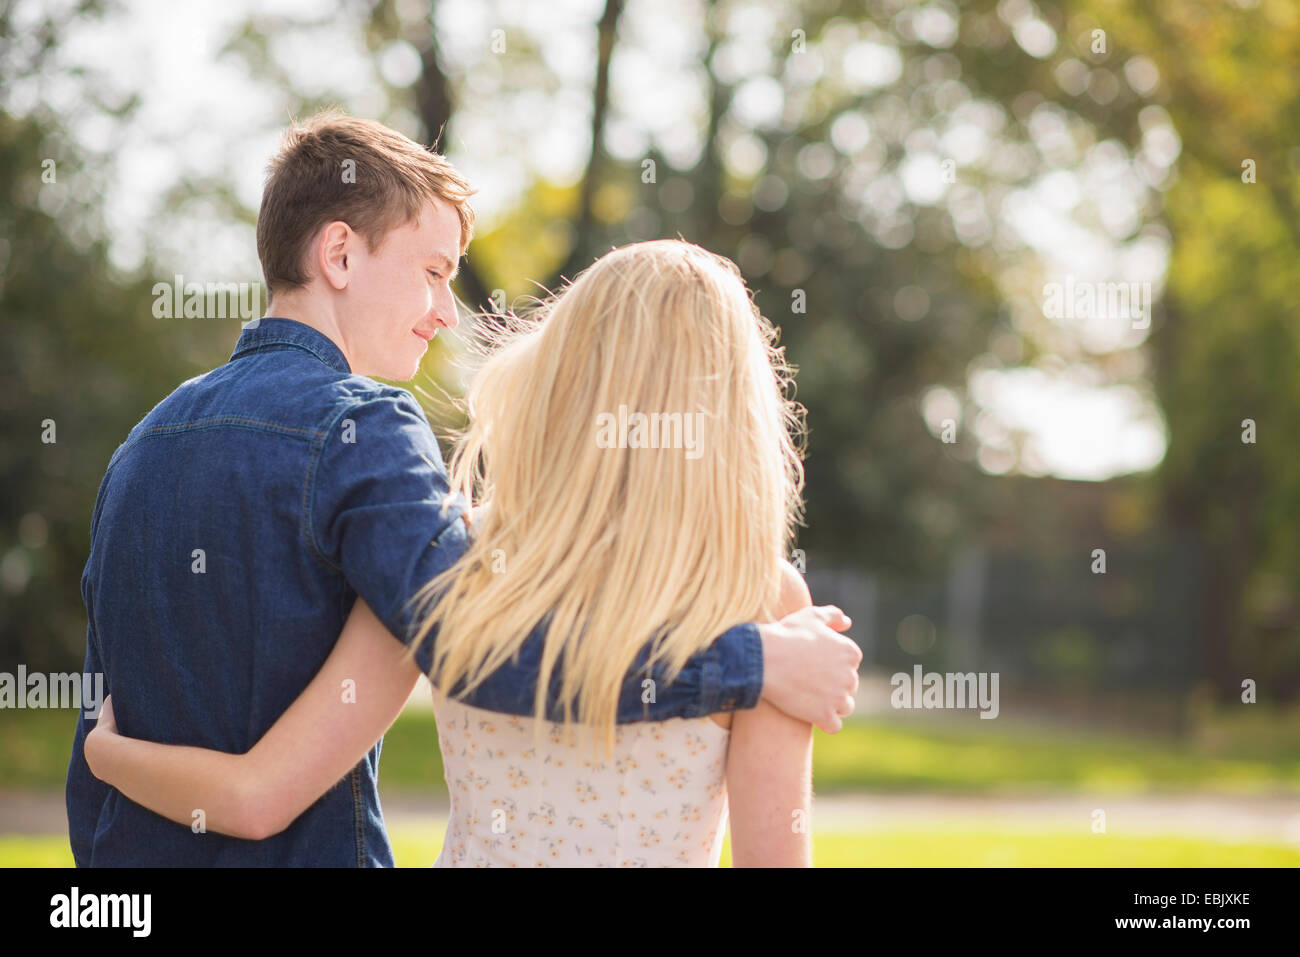 Rear view of romantic young couple strolling in park - Stock Image